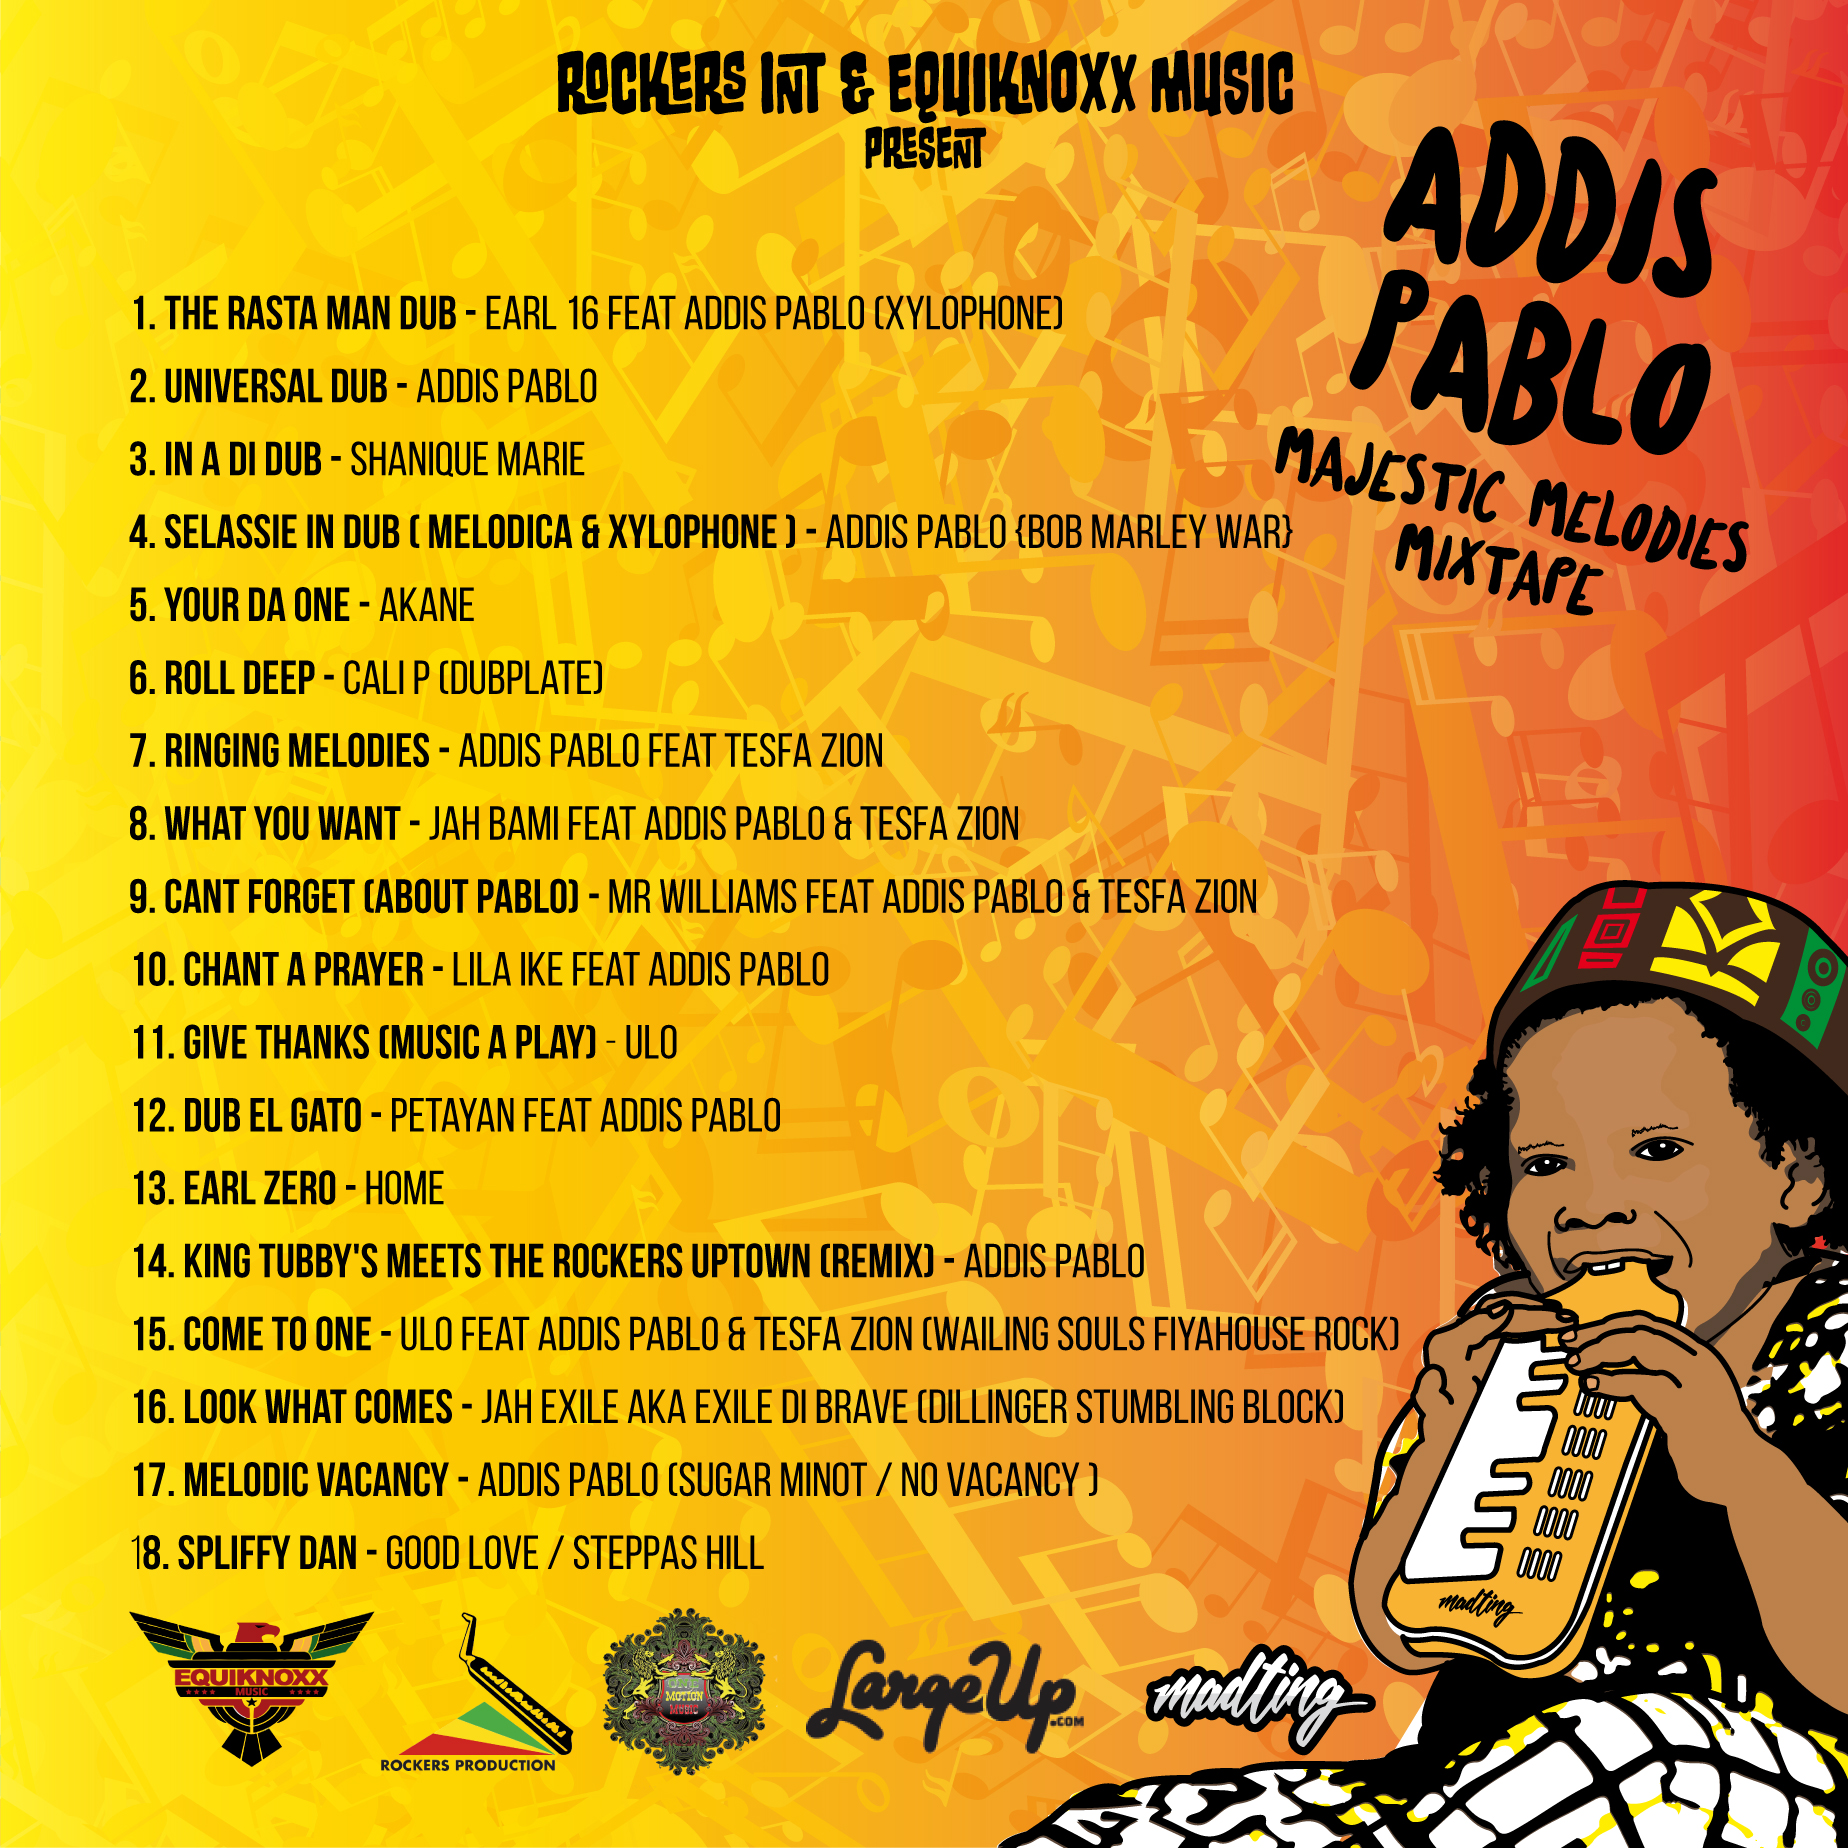 Addis-Pablo-Majestic-Melodies-mixtape-back-cover